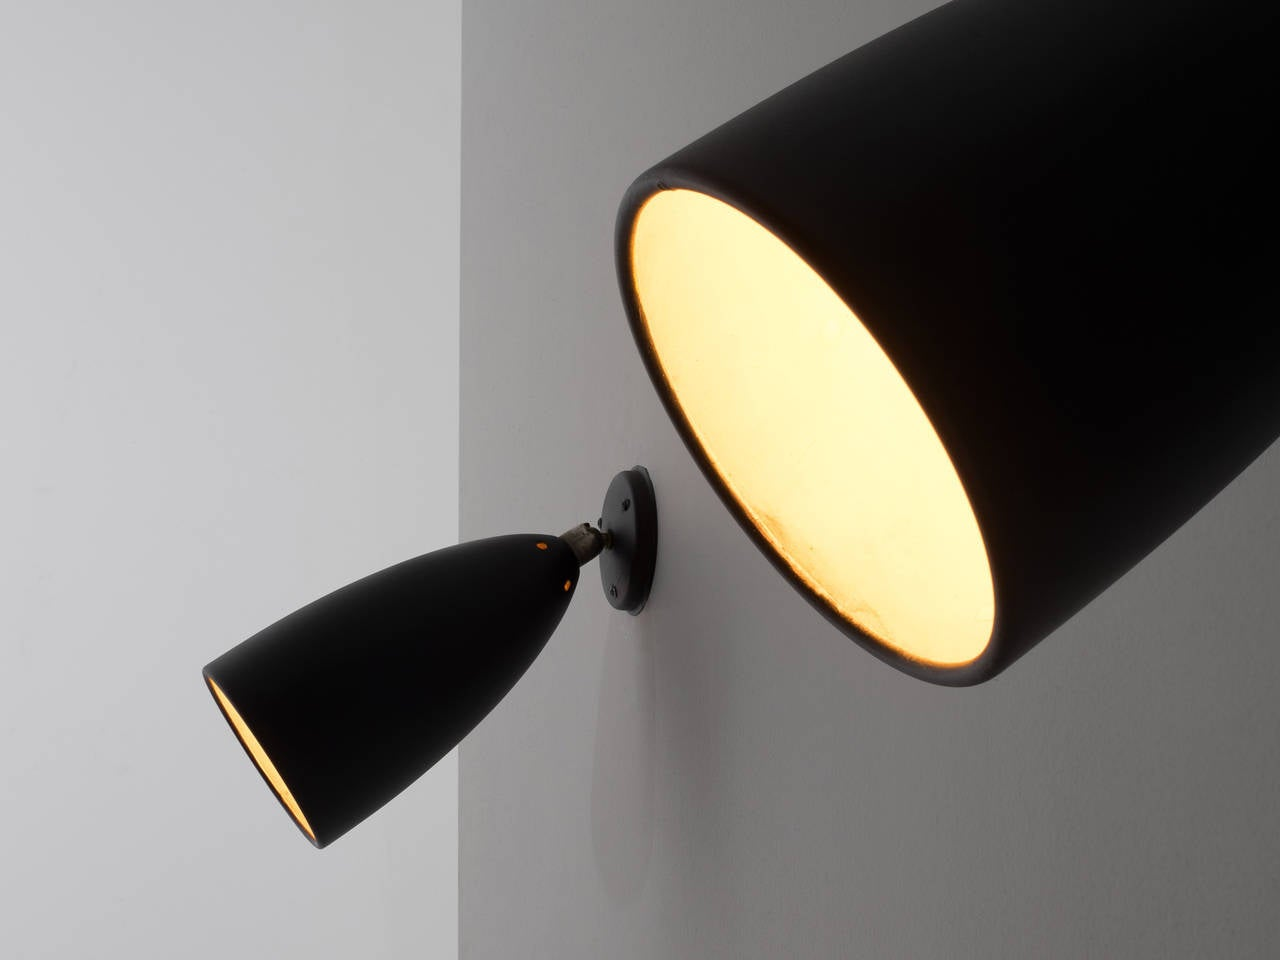 Wall Lights Adjustable : Adjustable Wall Lights For Sale at 1stdibs